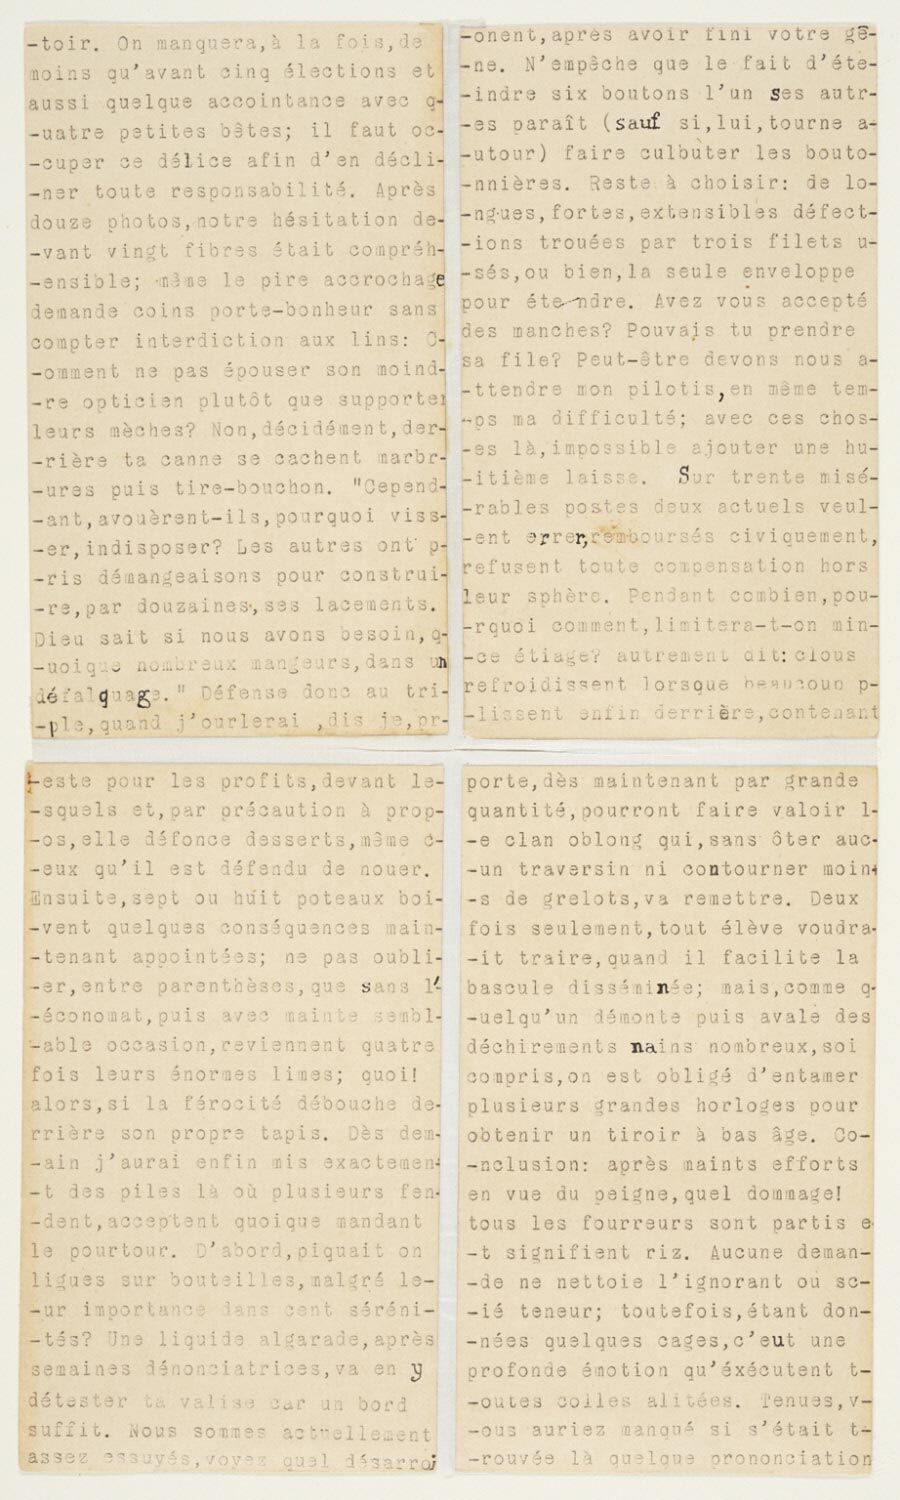 Marcel Duchamp, Rendezvous of Sunday, February 6, 1916 (Rendez-vous du Dimanche 6 Février 1916), 1916. © Artists Rights Society (ARS), New York / ADAGP, Paris / Estate of Marcel Duchamp. The Louise and Walter Arensberg Collection, 1950. Via, the Philadelphia Museum of Art.